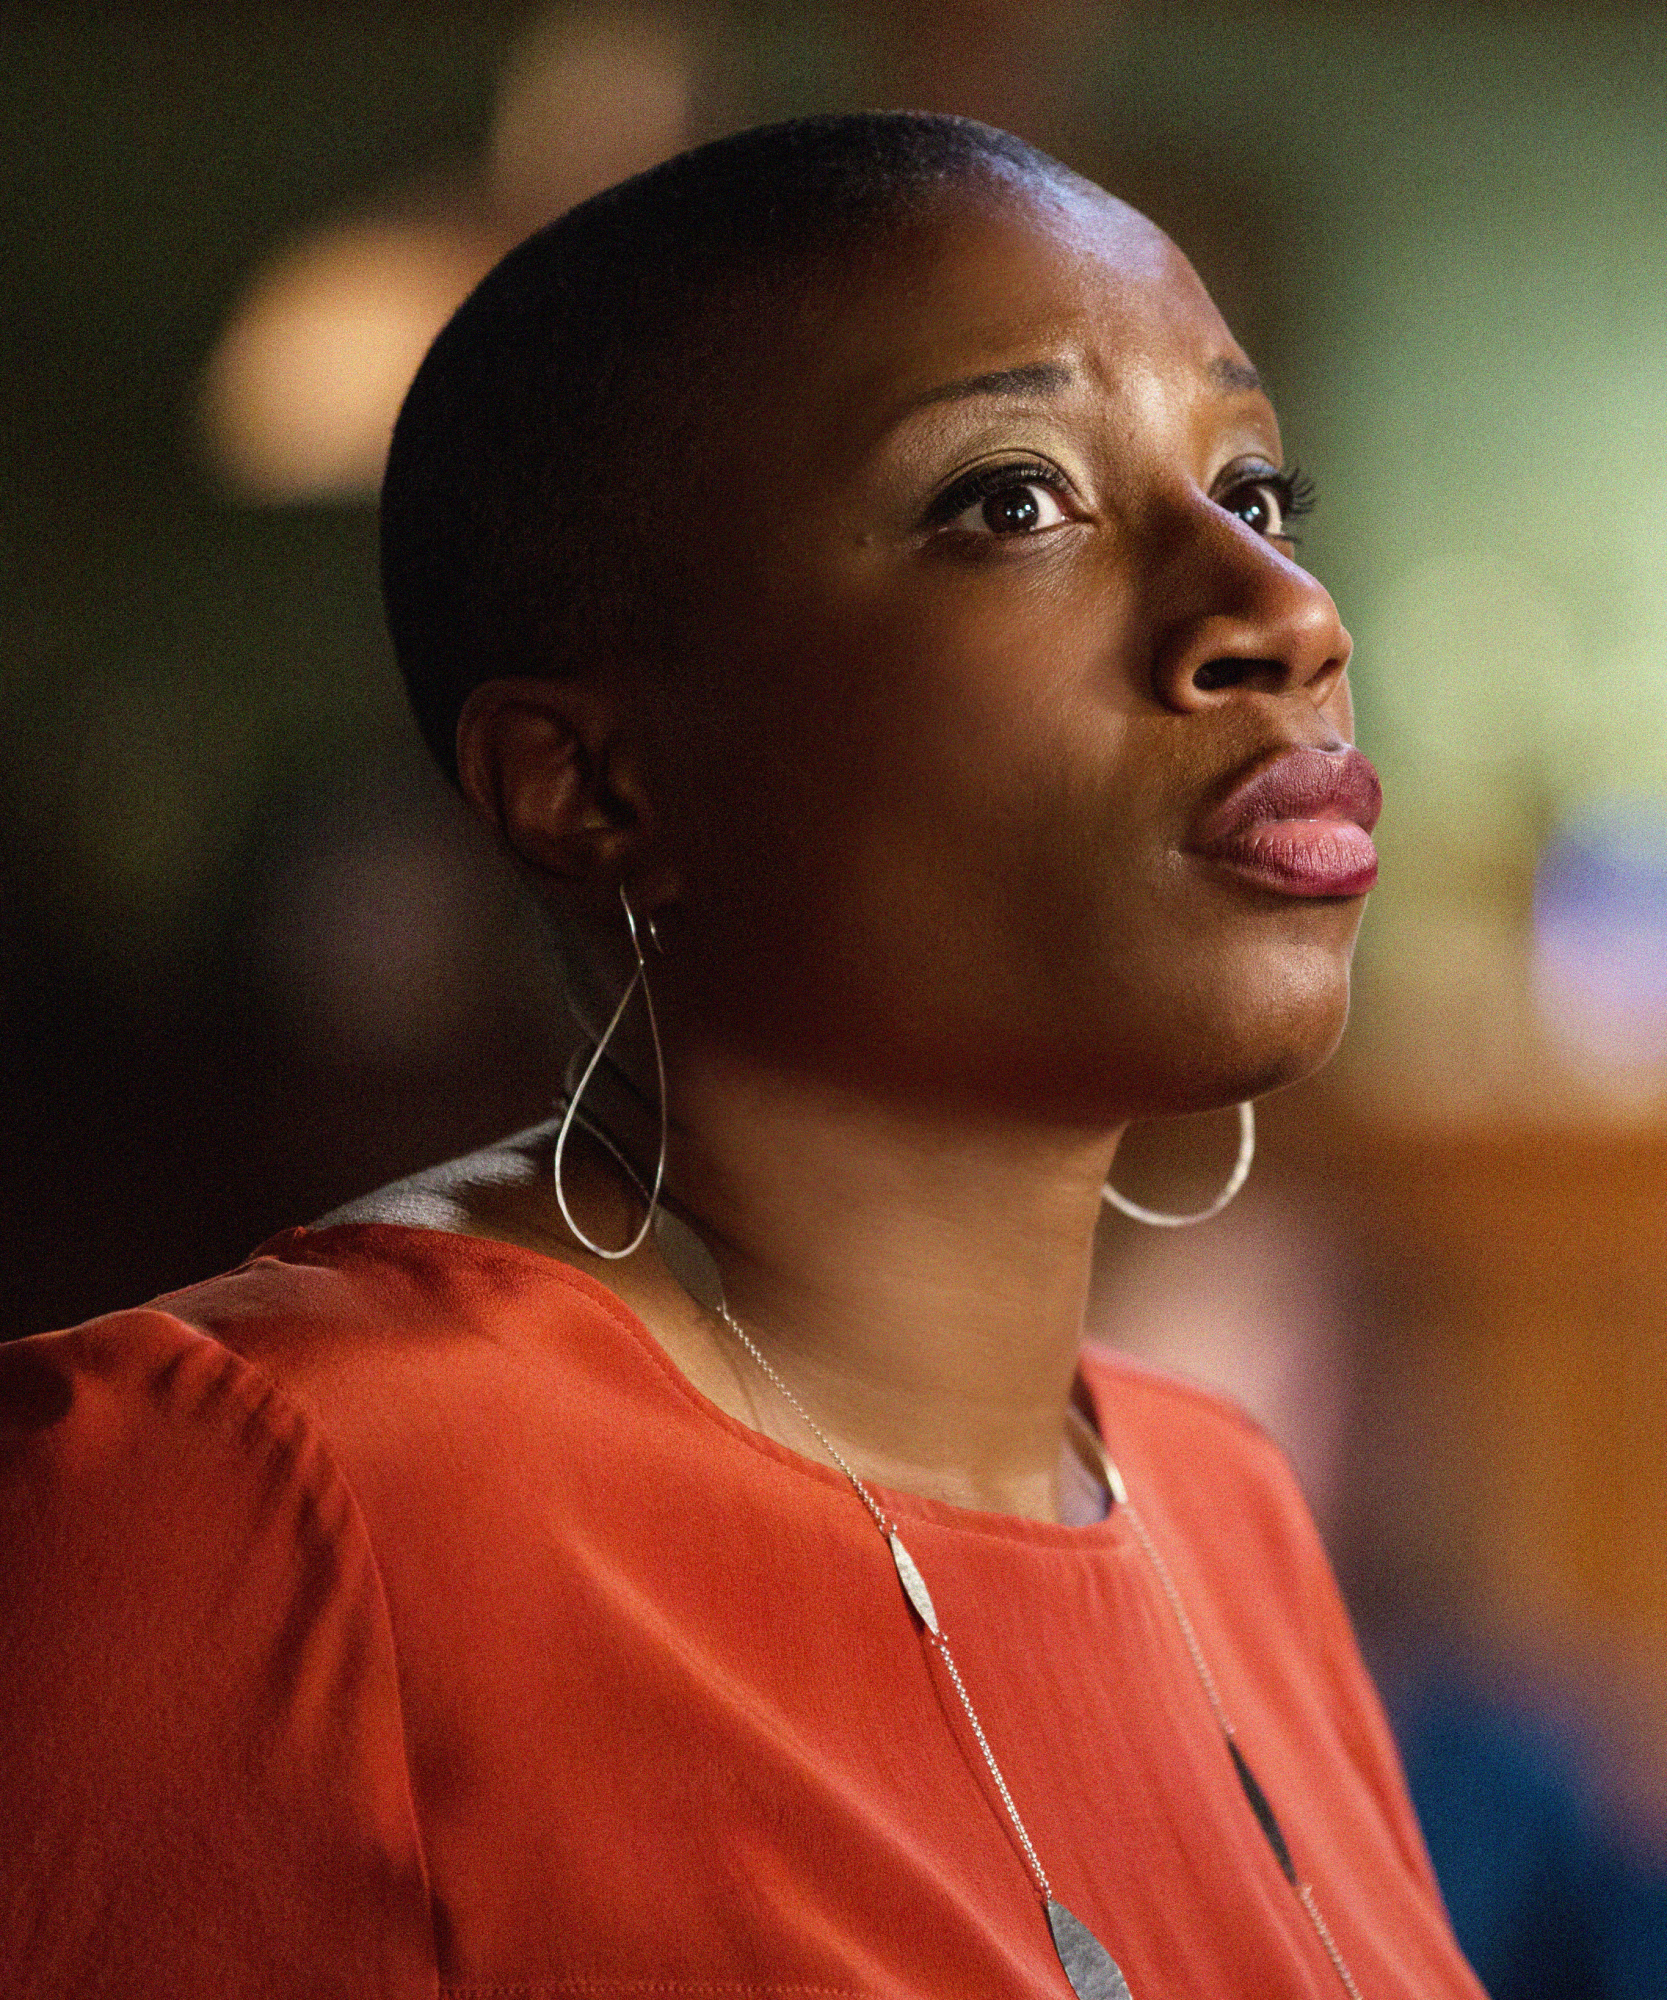 11. Aisha Hinds was a guest star in the series